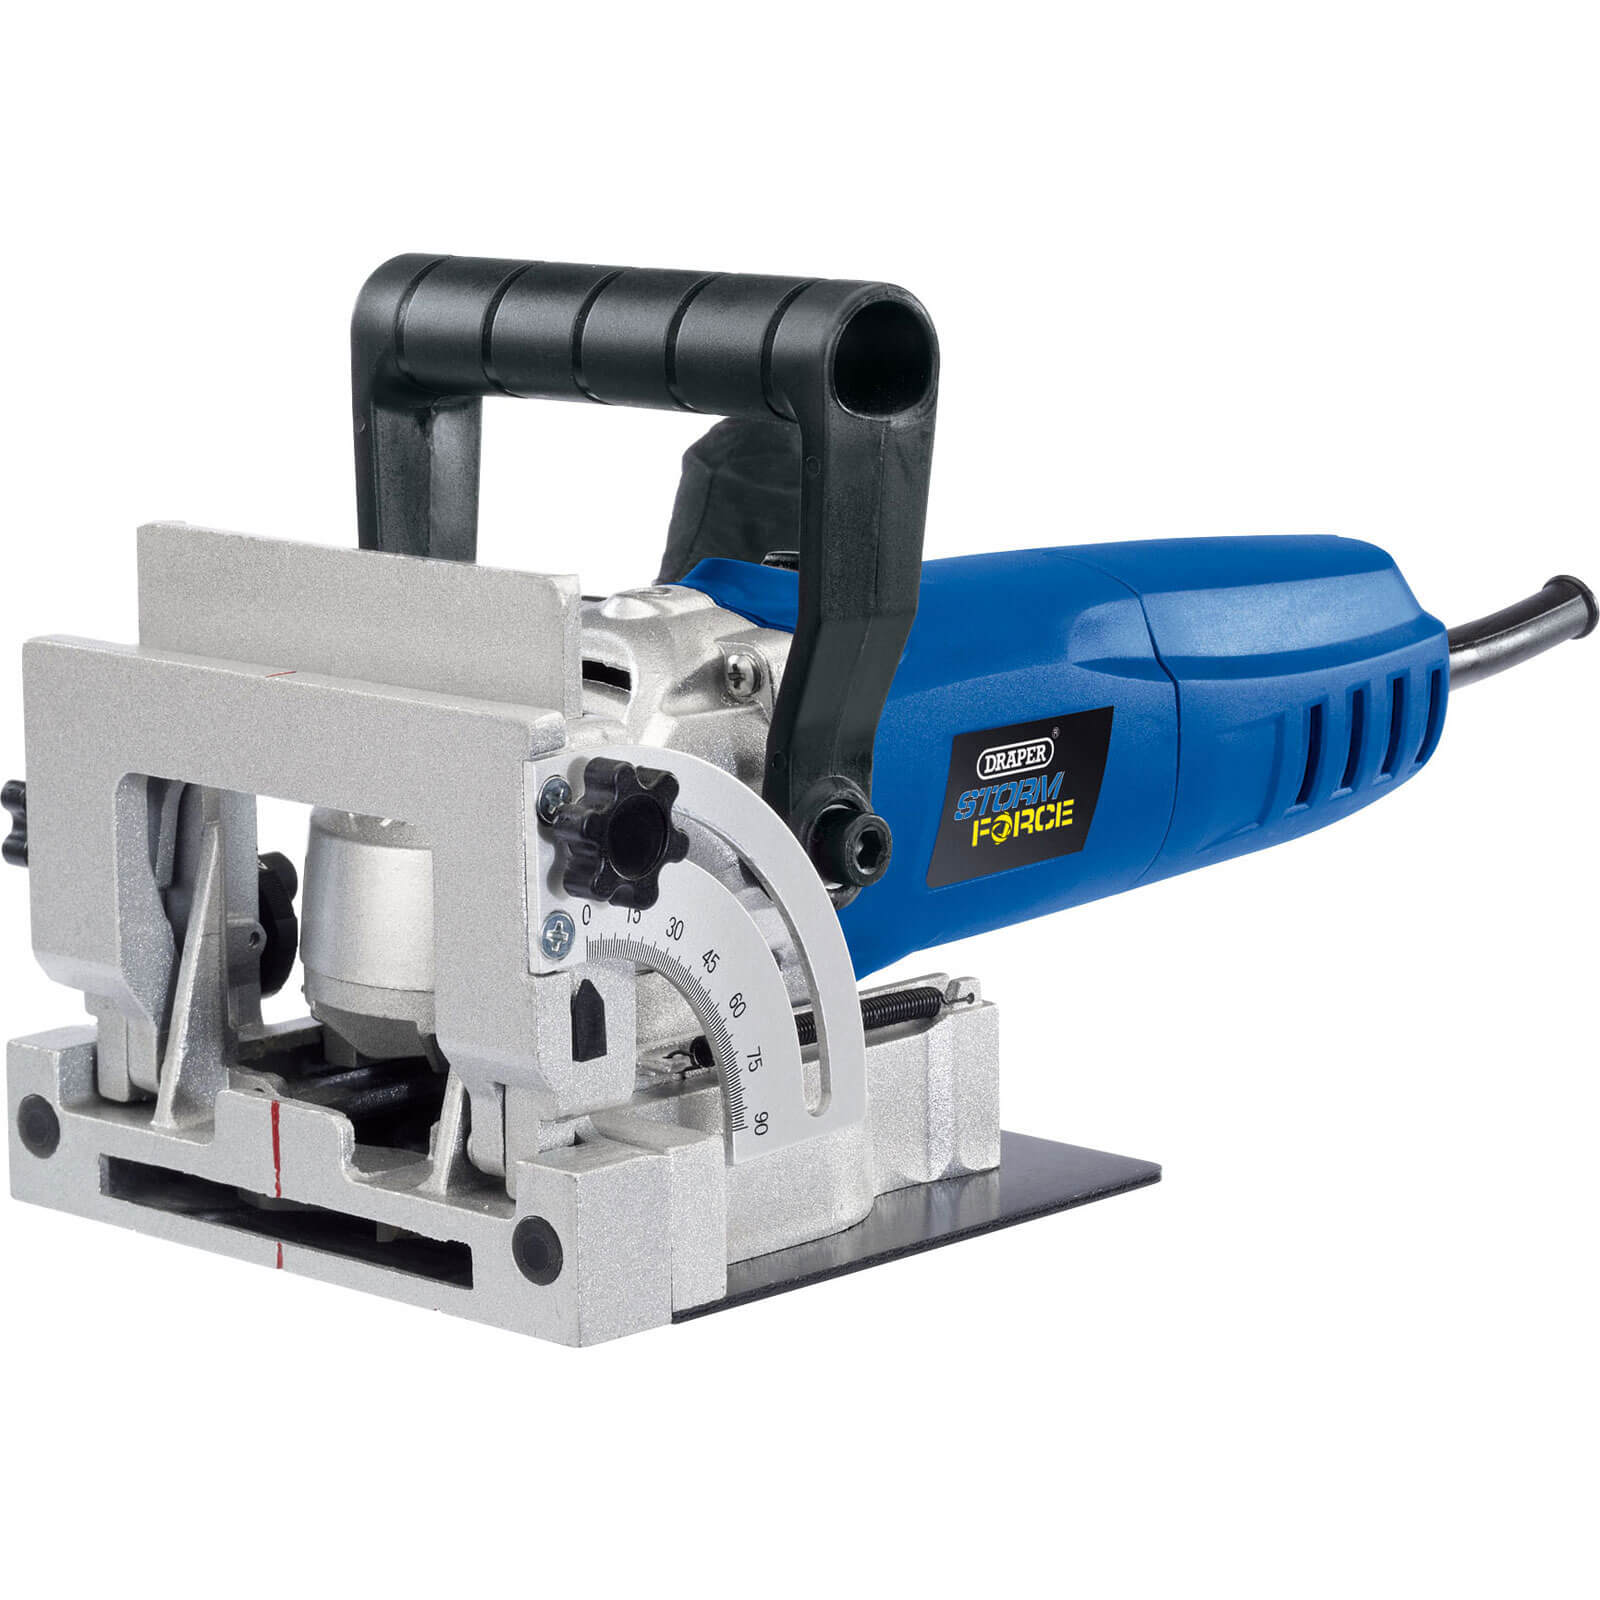 Draper Storm Force Biscuit Jointer 240v